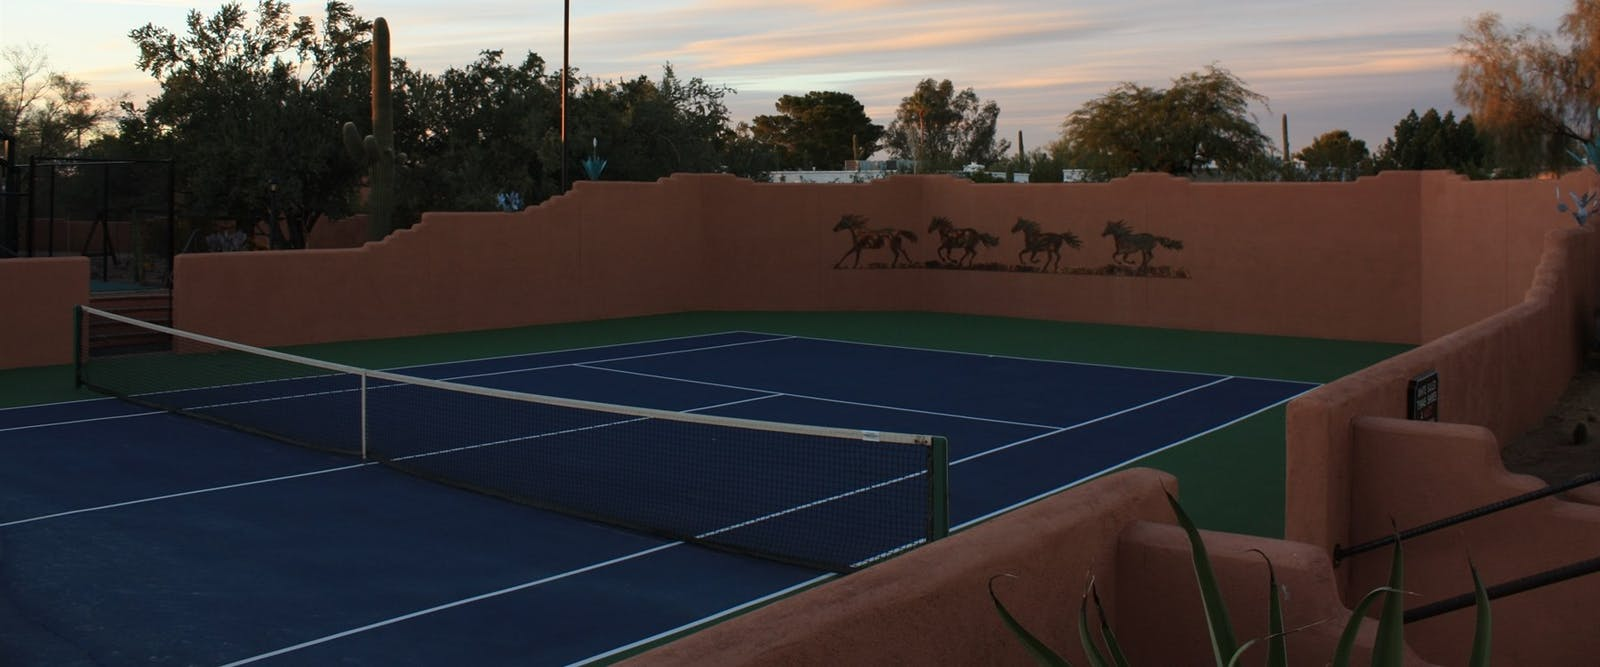 Tennis Court At White Stallion Ranch, Arizona